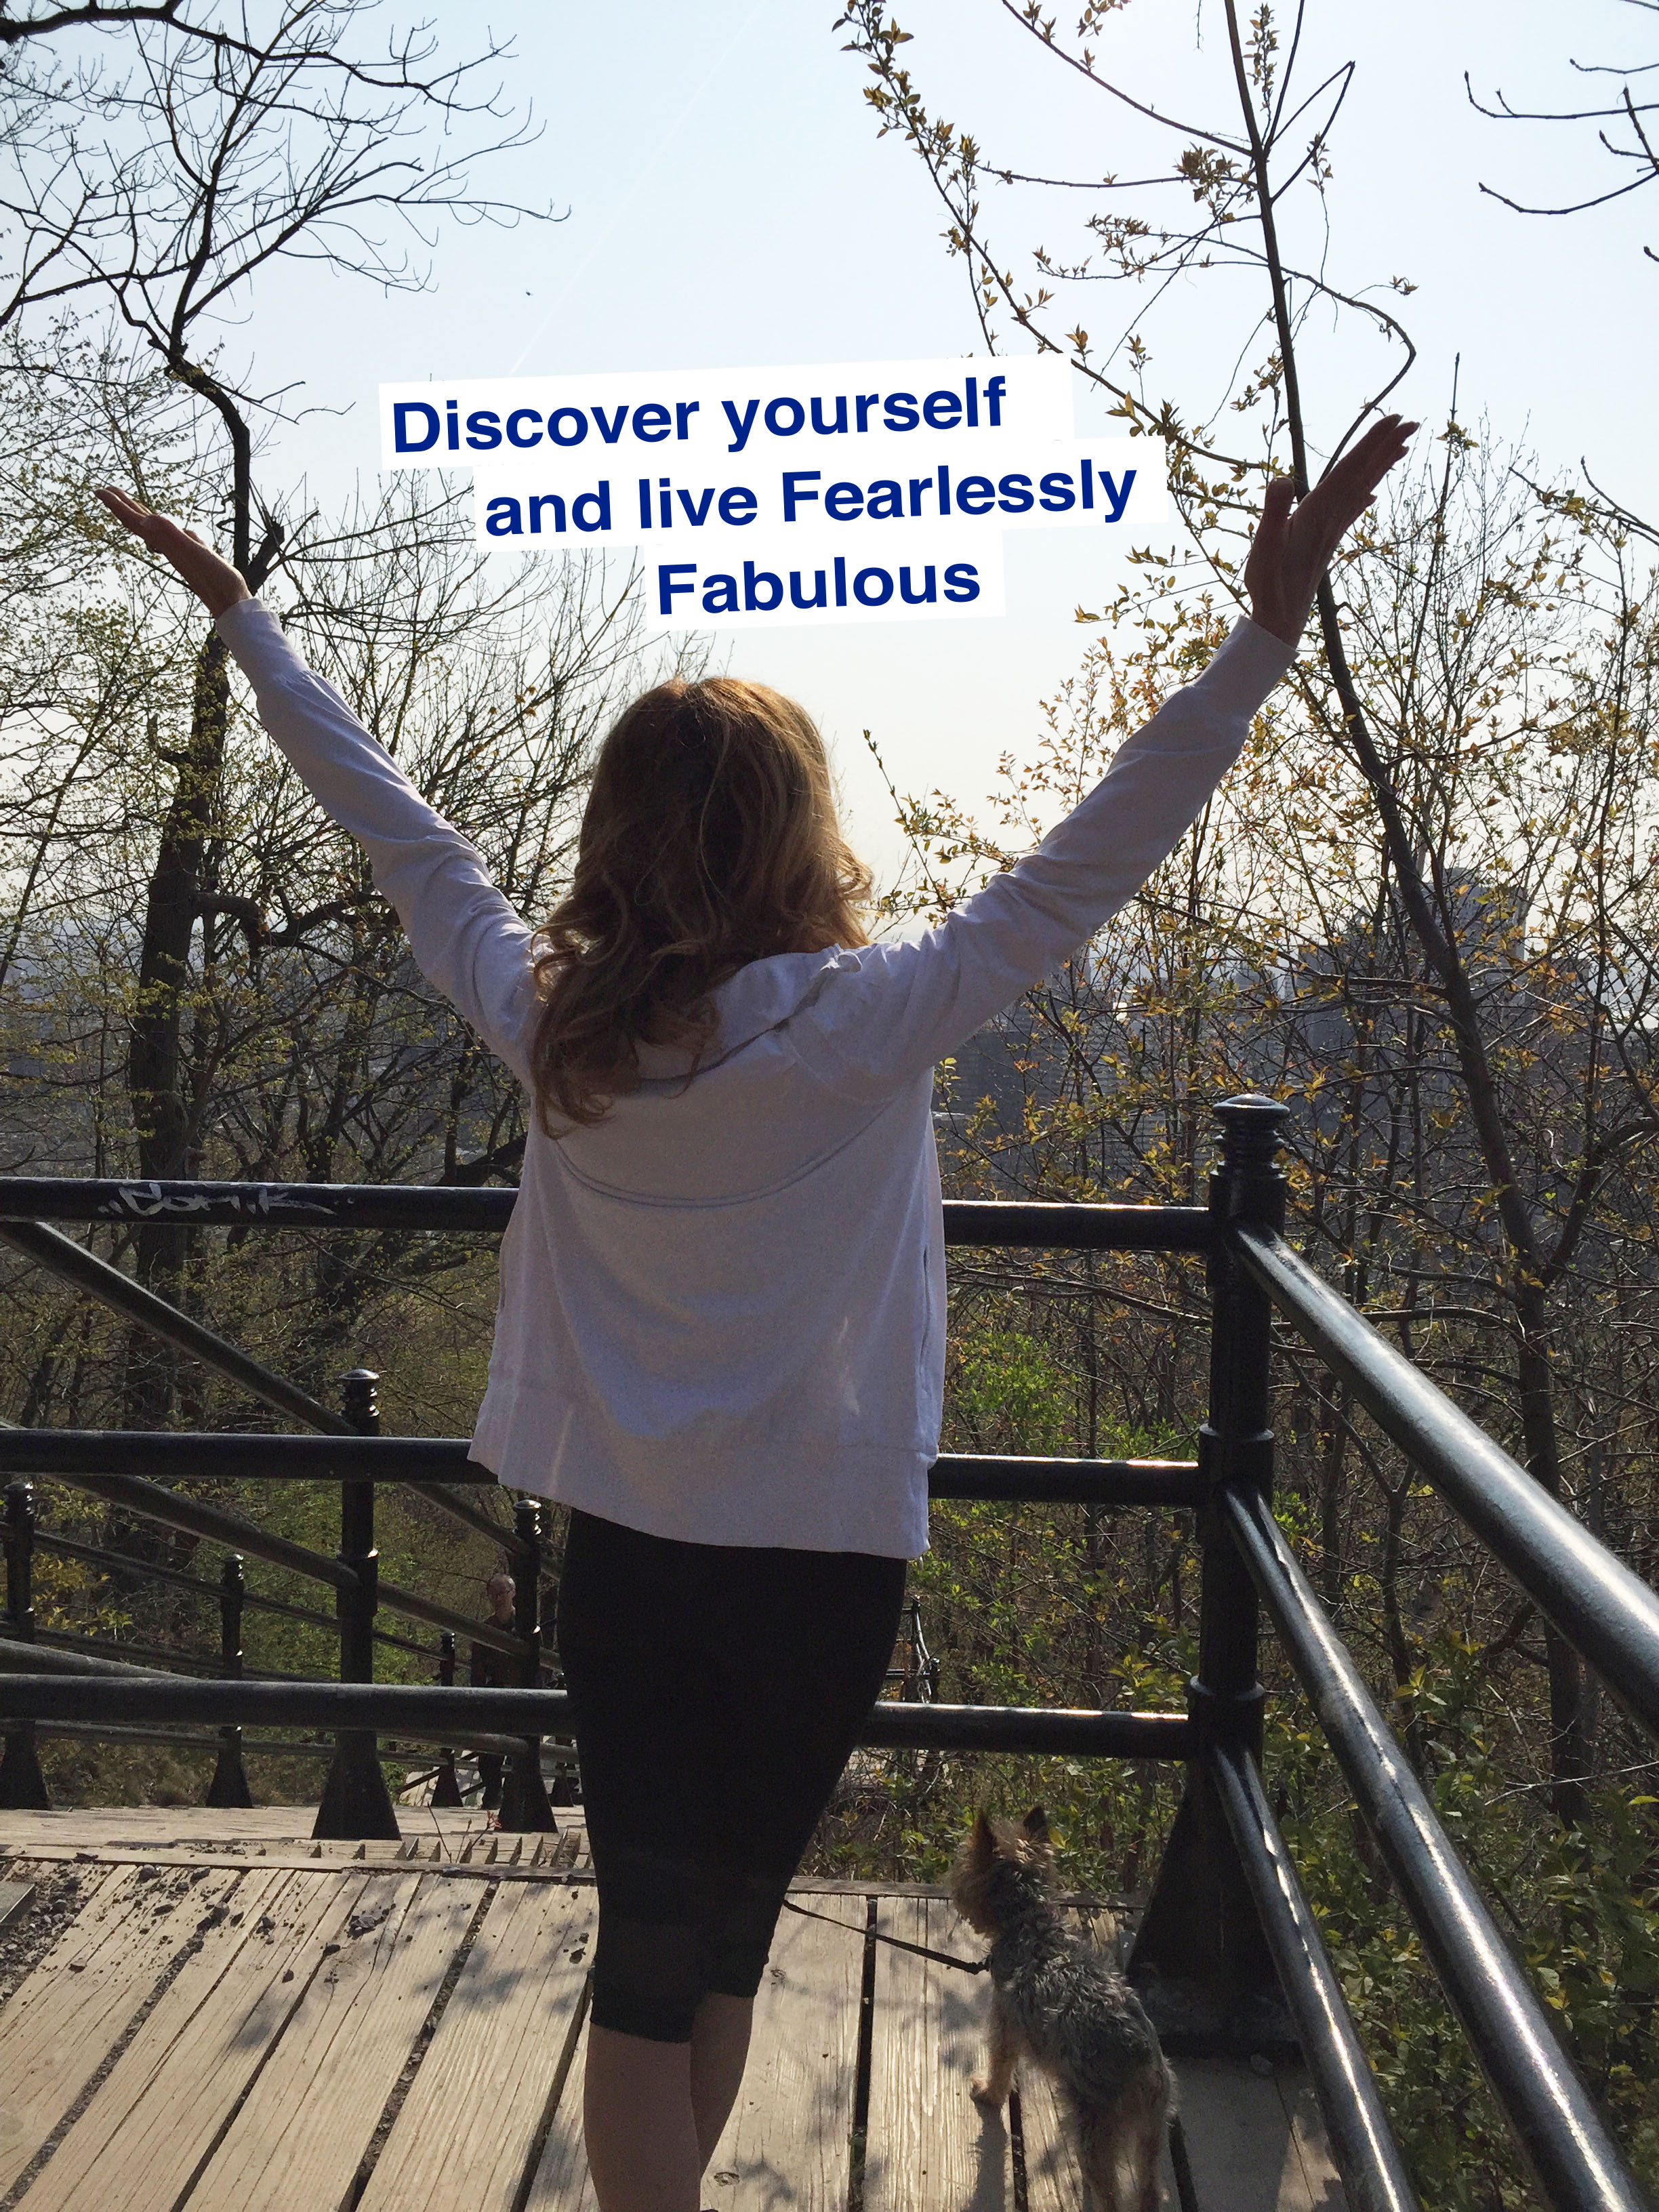 Discovering Yourself and Live Fearlessly Fabulous!